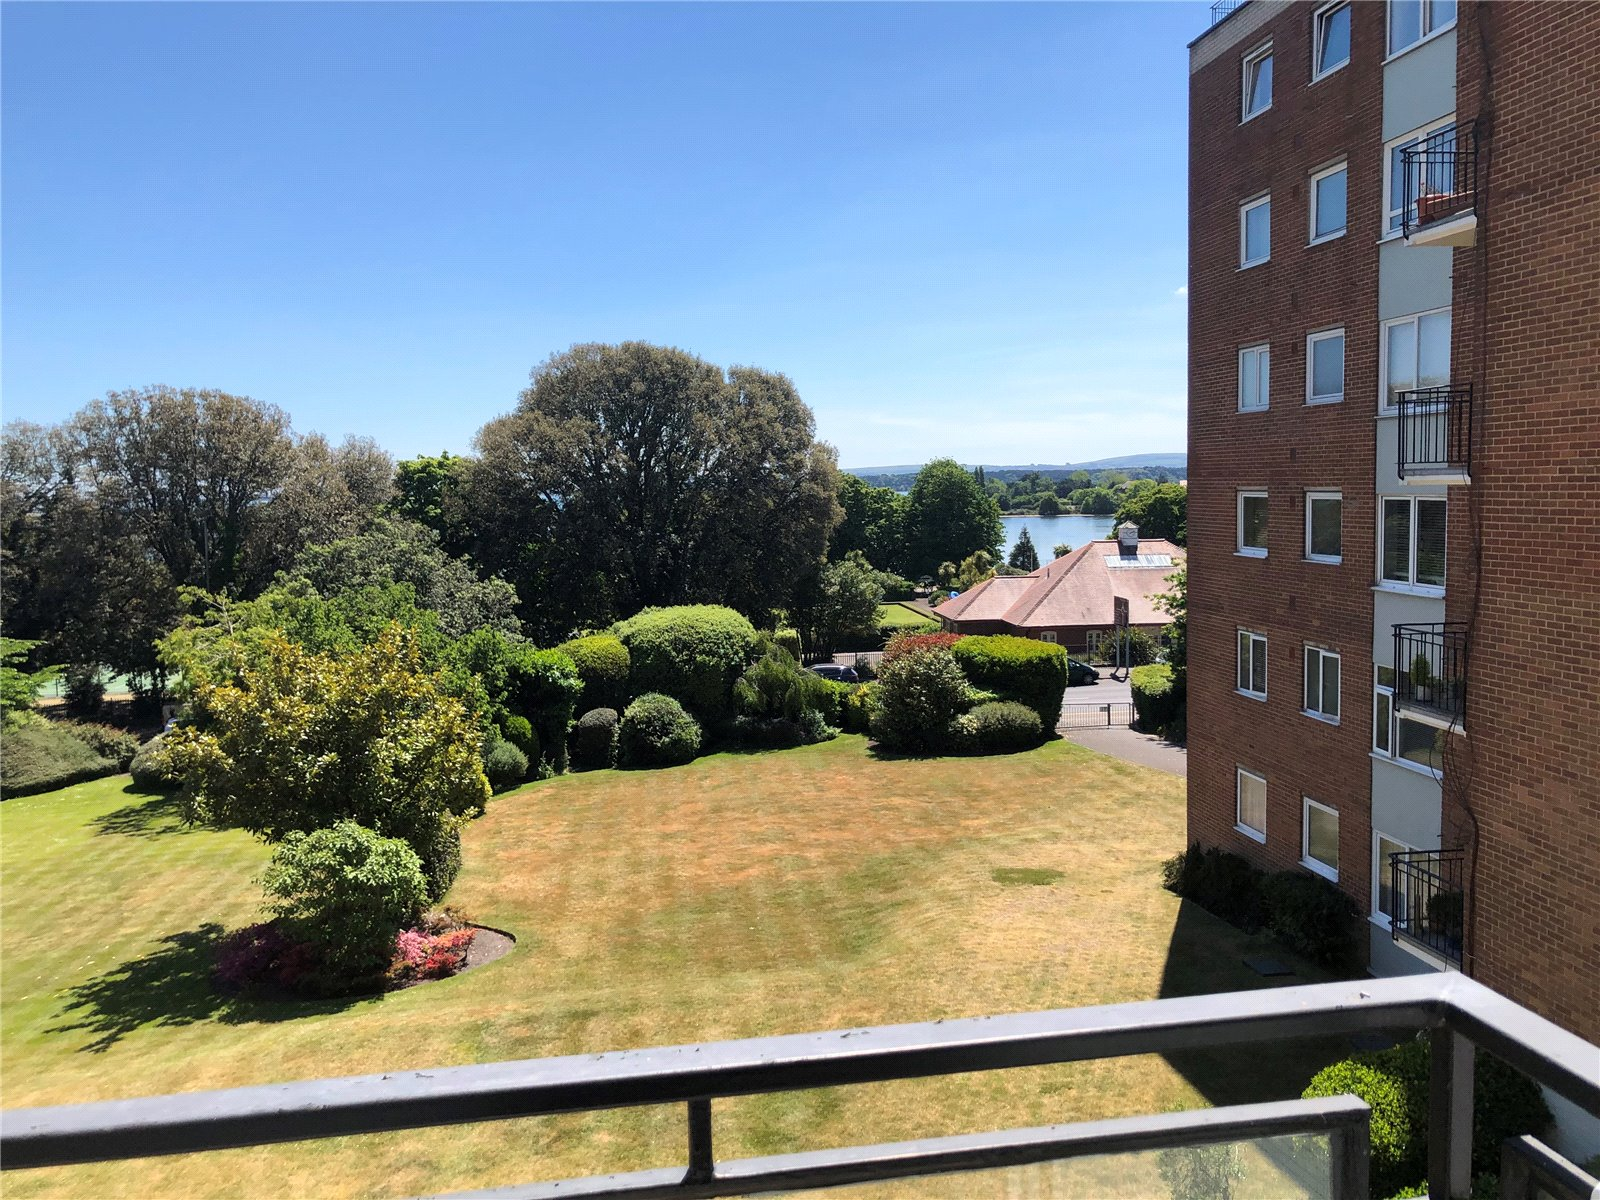 2 bed apartment for sale in Parkstone Road, Poole 0